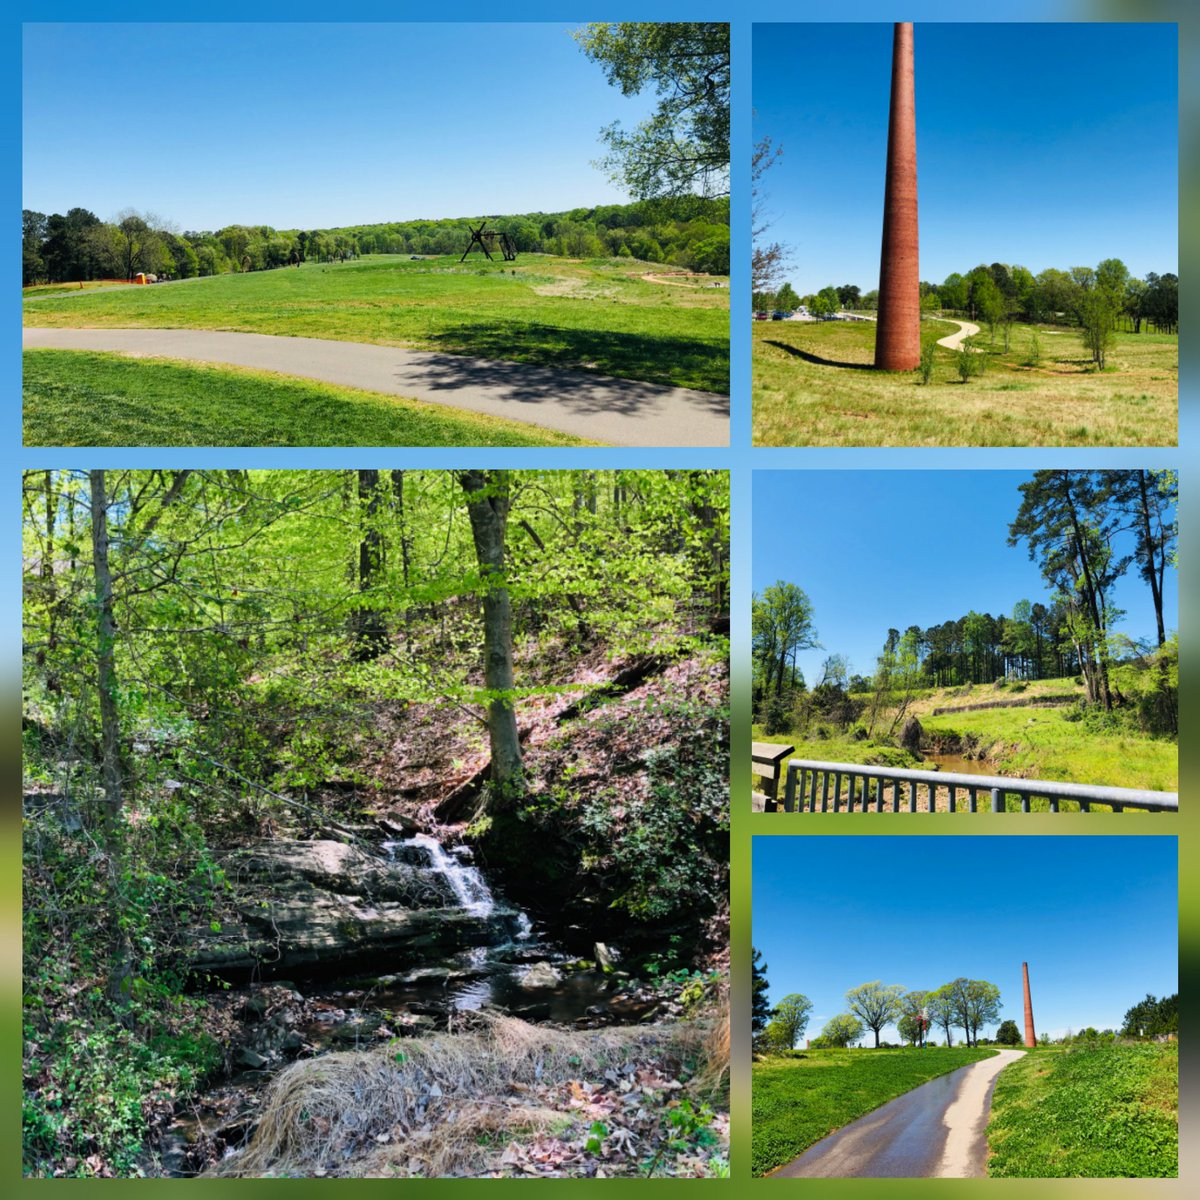 It's a beautiful day to visit the greenway trail conveniently located just 3-5 minutes away from us! Come visit us before 5:30pm so we can show you your new home with almost instant access to this beautiful scenery! #Outdoors #Raleigh